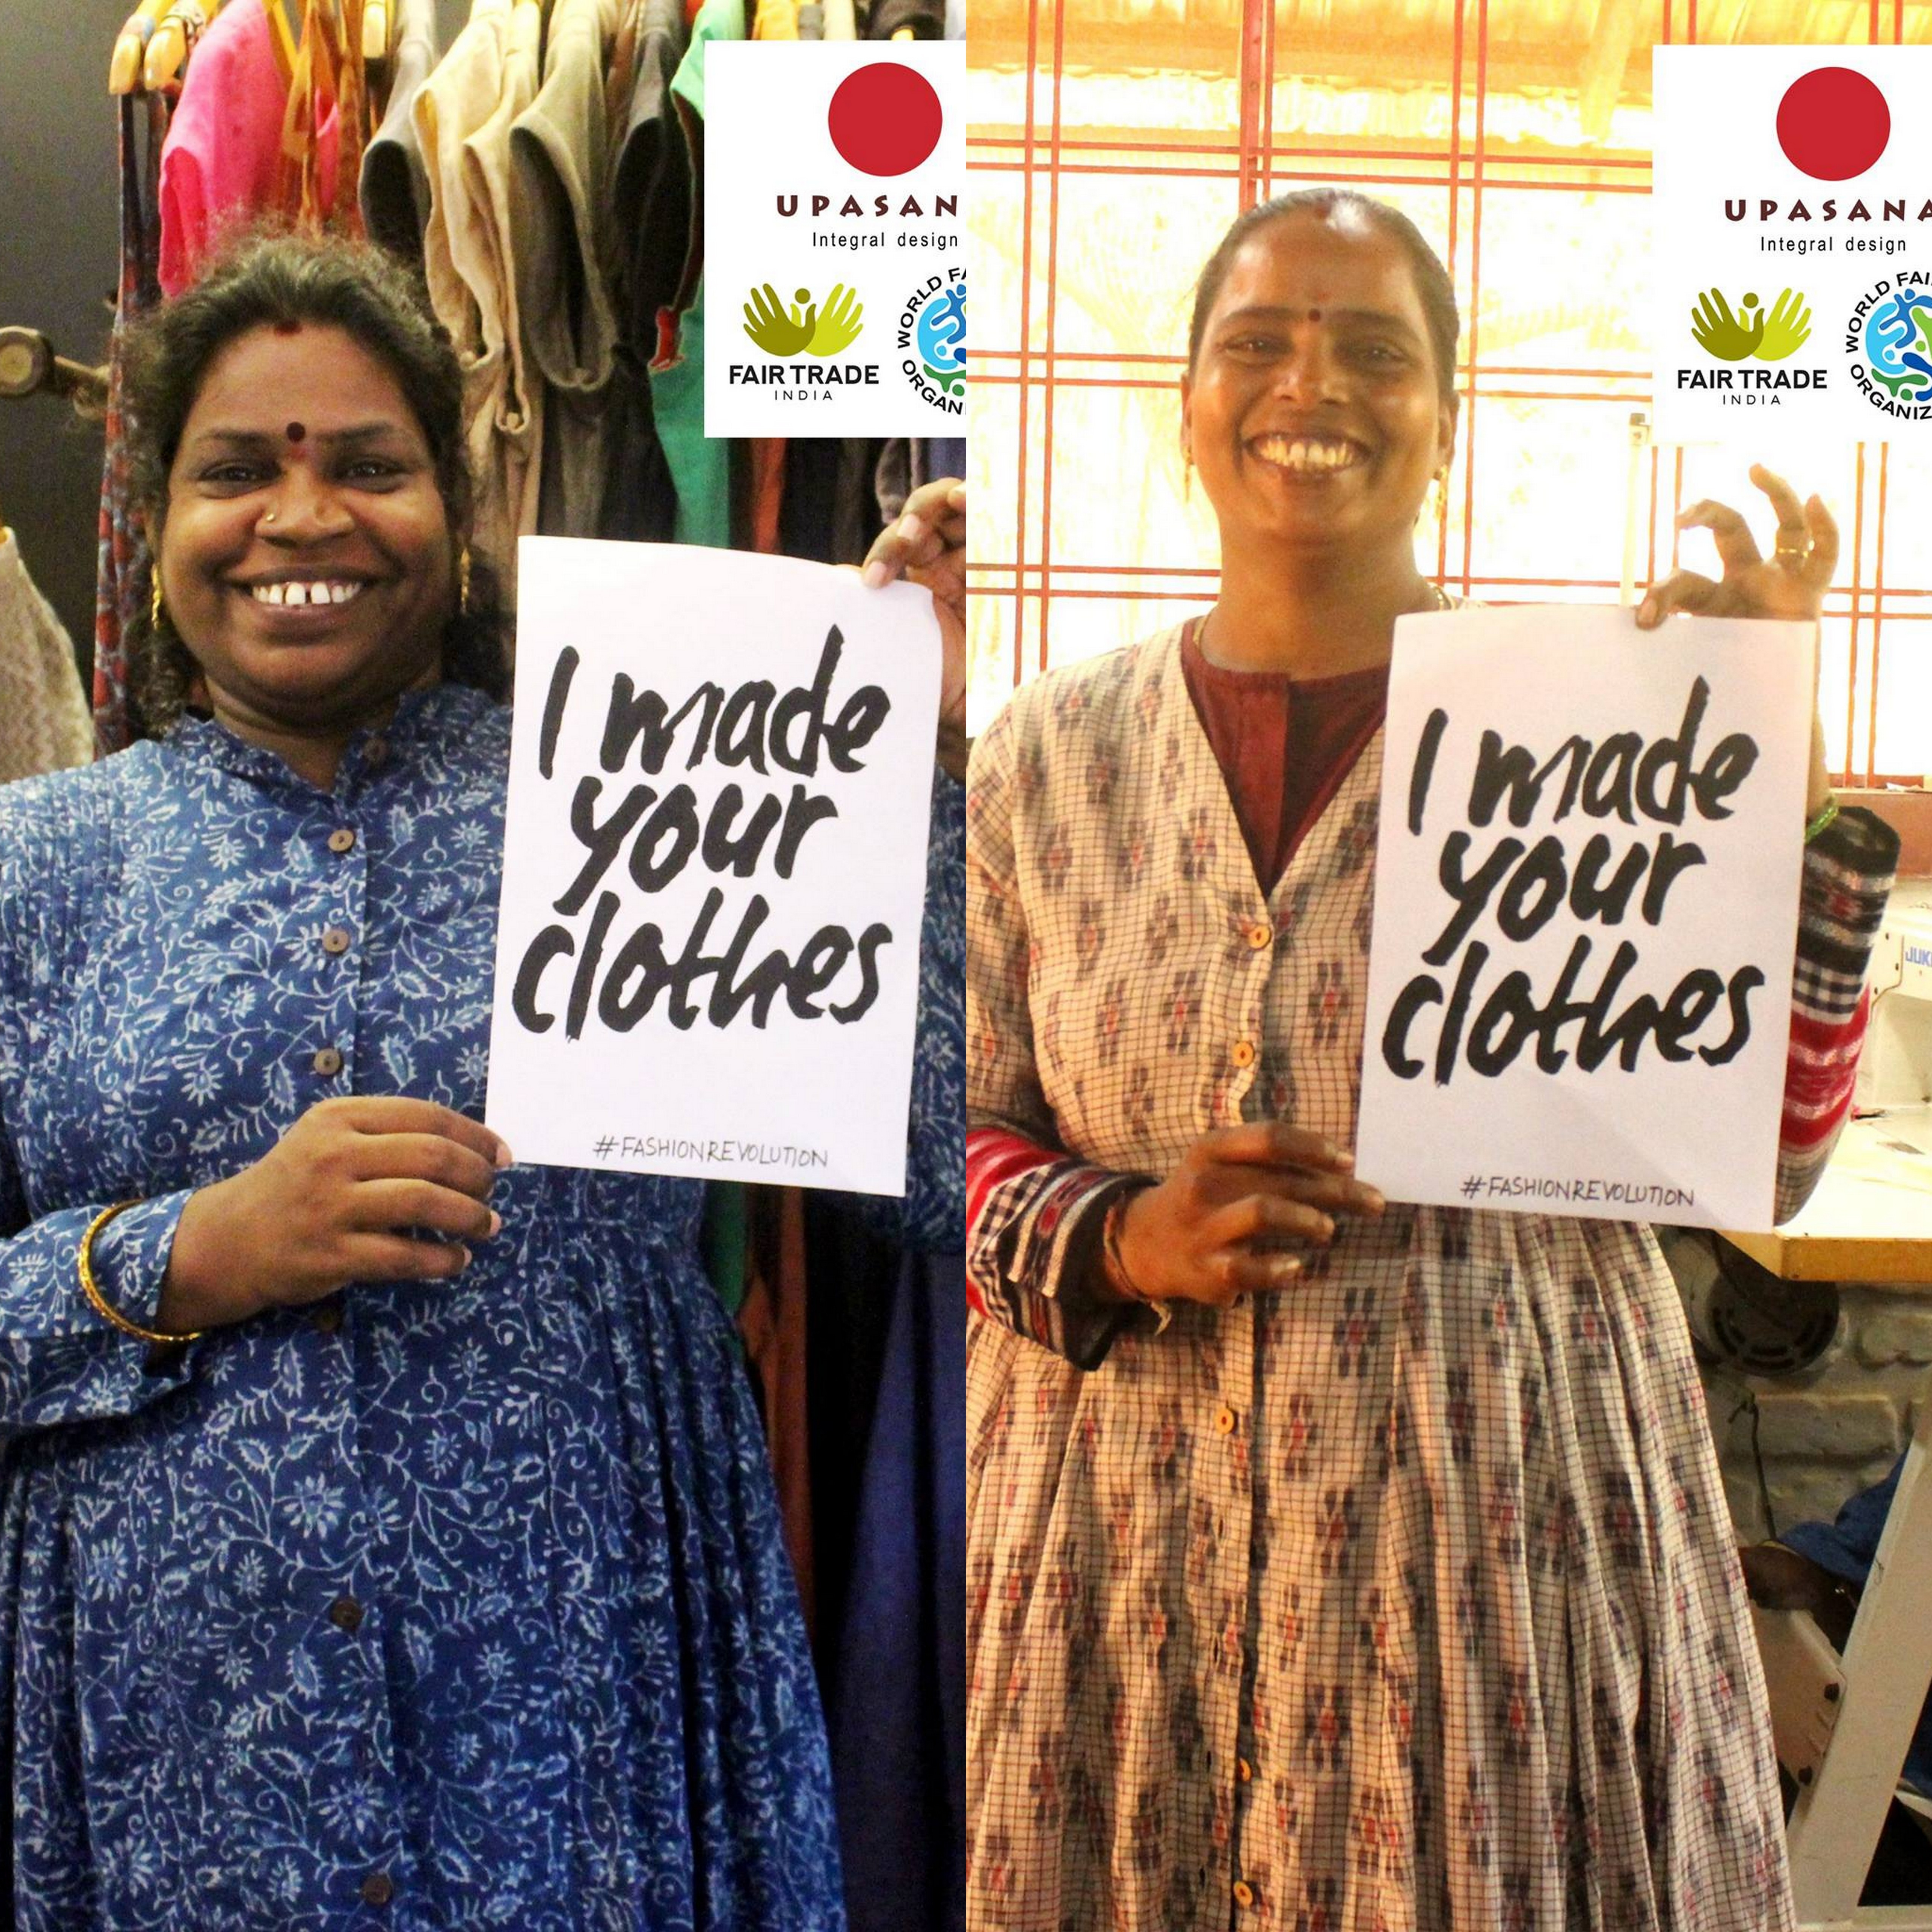 handmade, whomademyclothes, natural, artisans